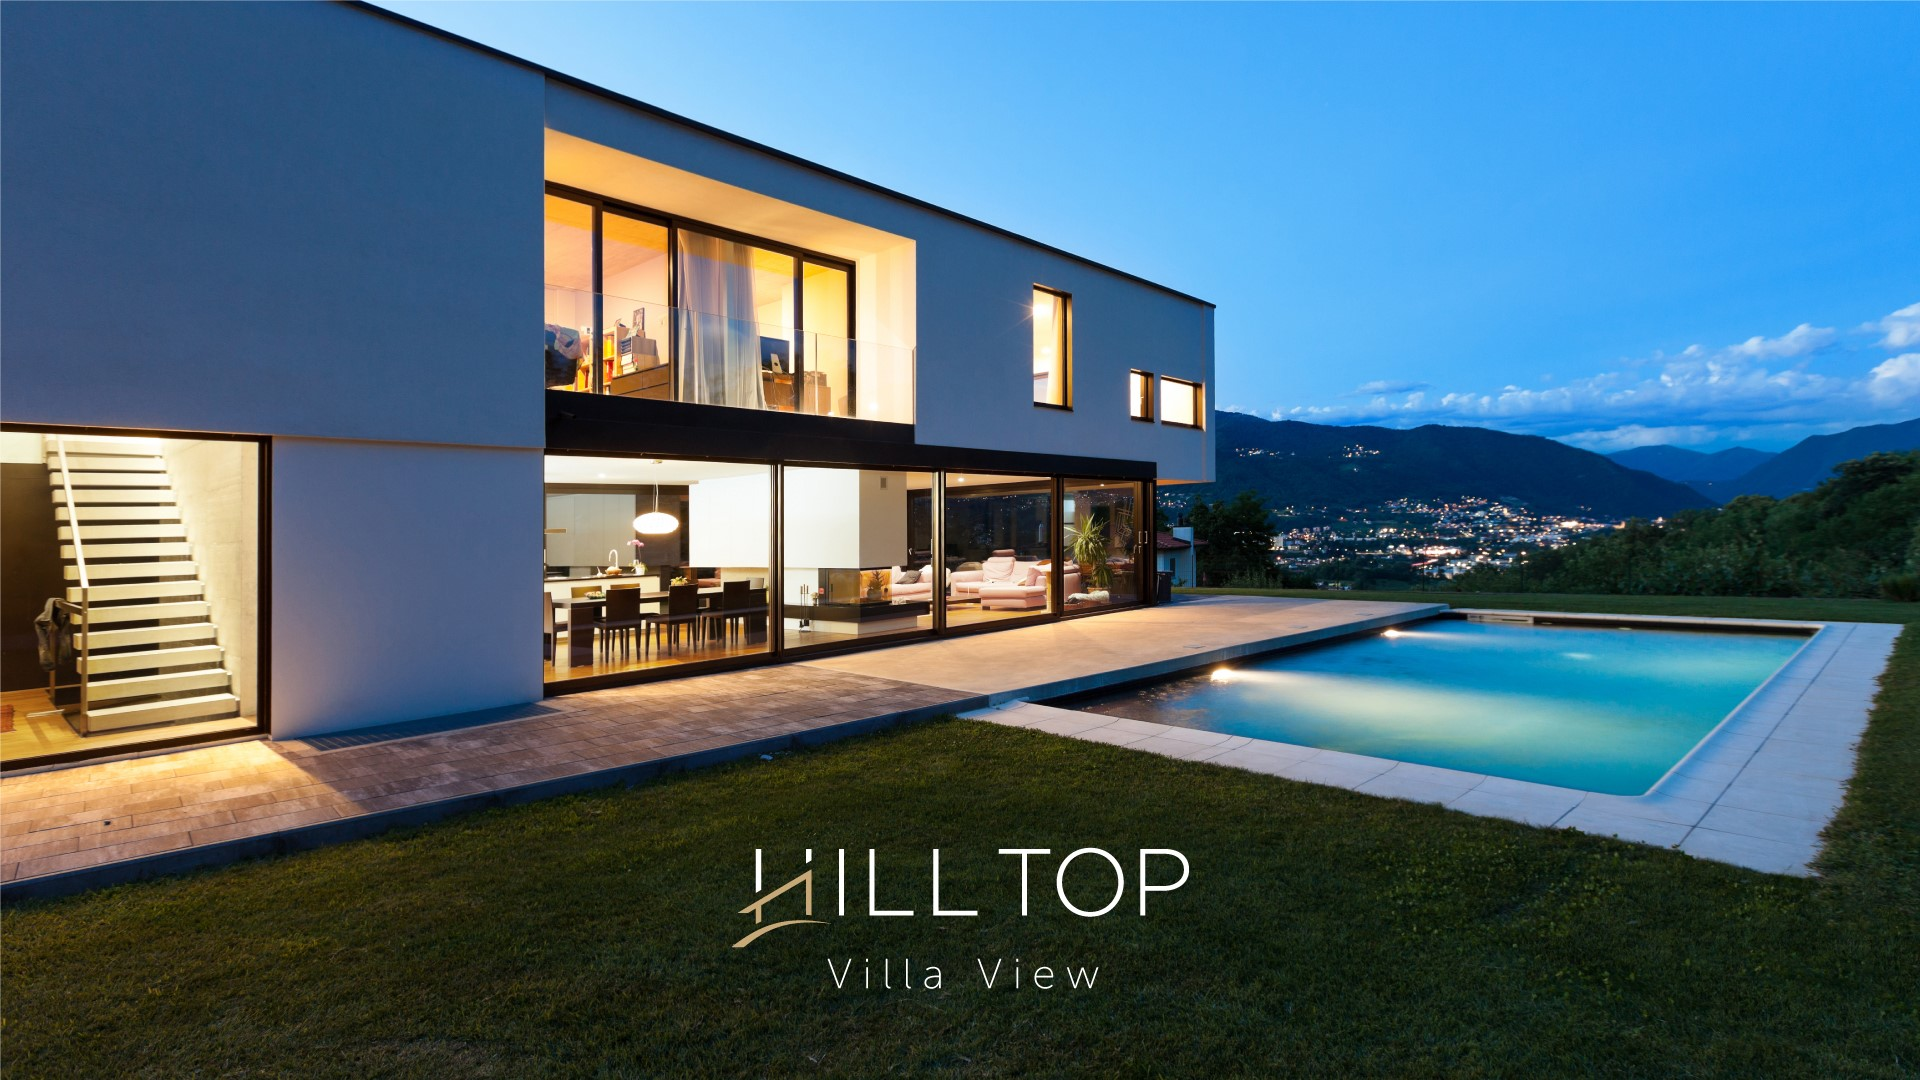 Hill Top – Villa View